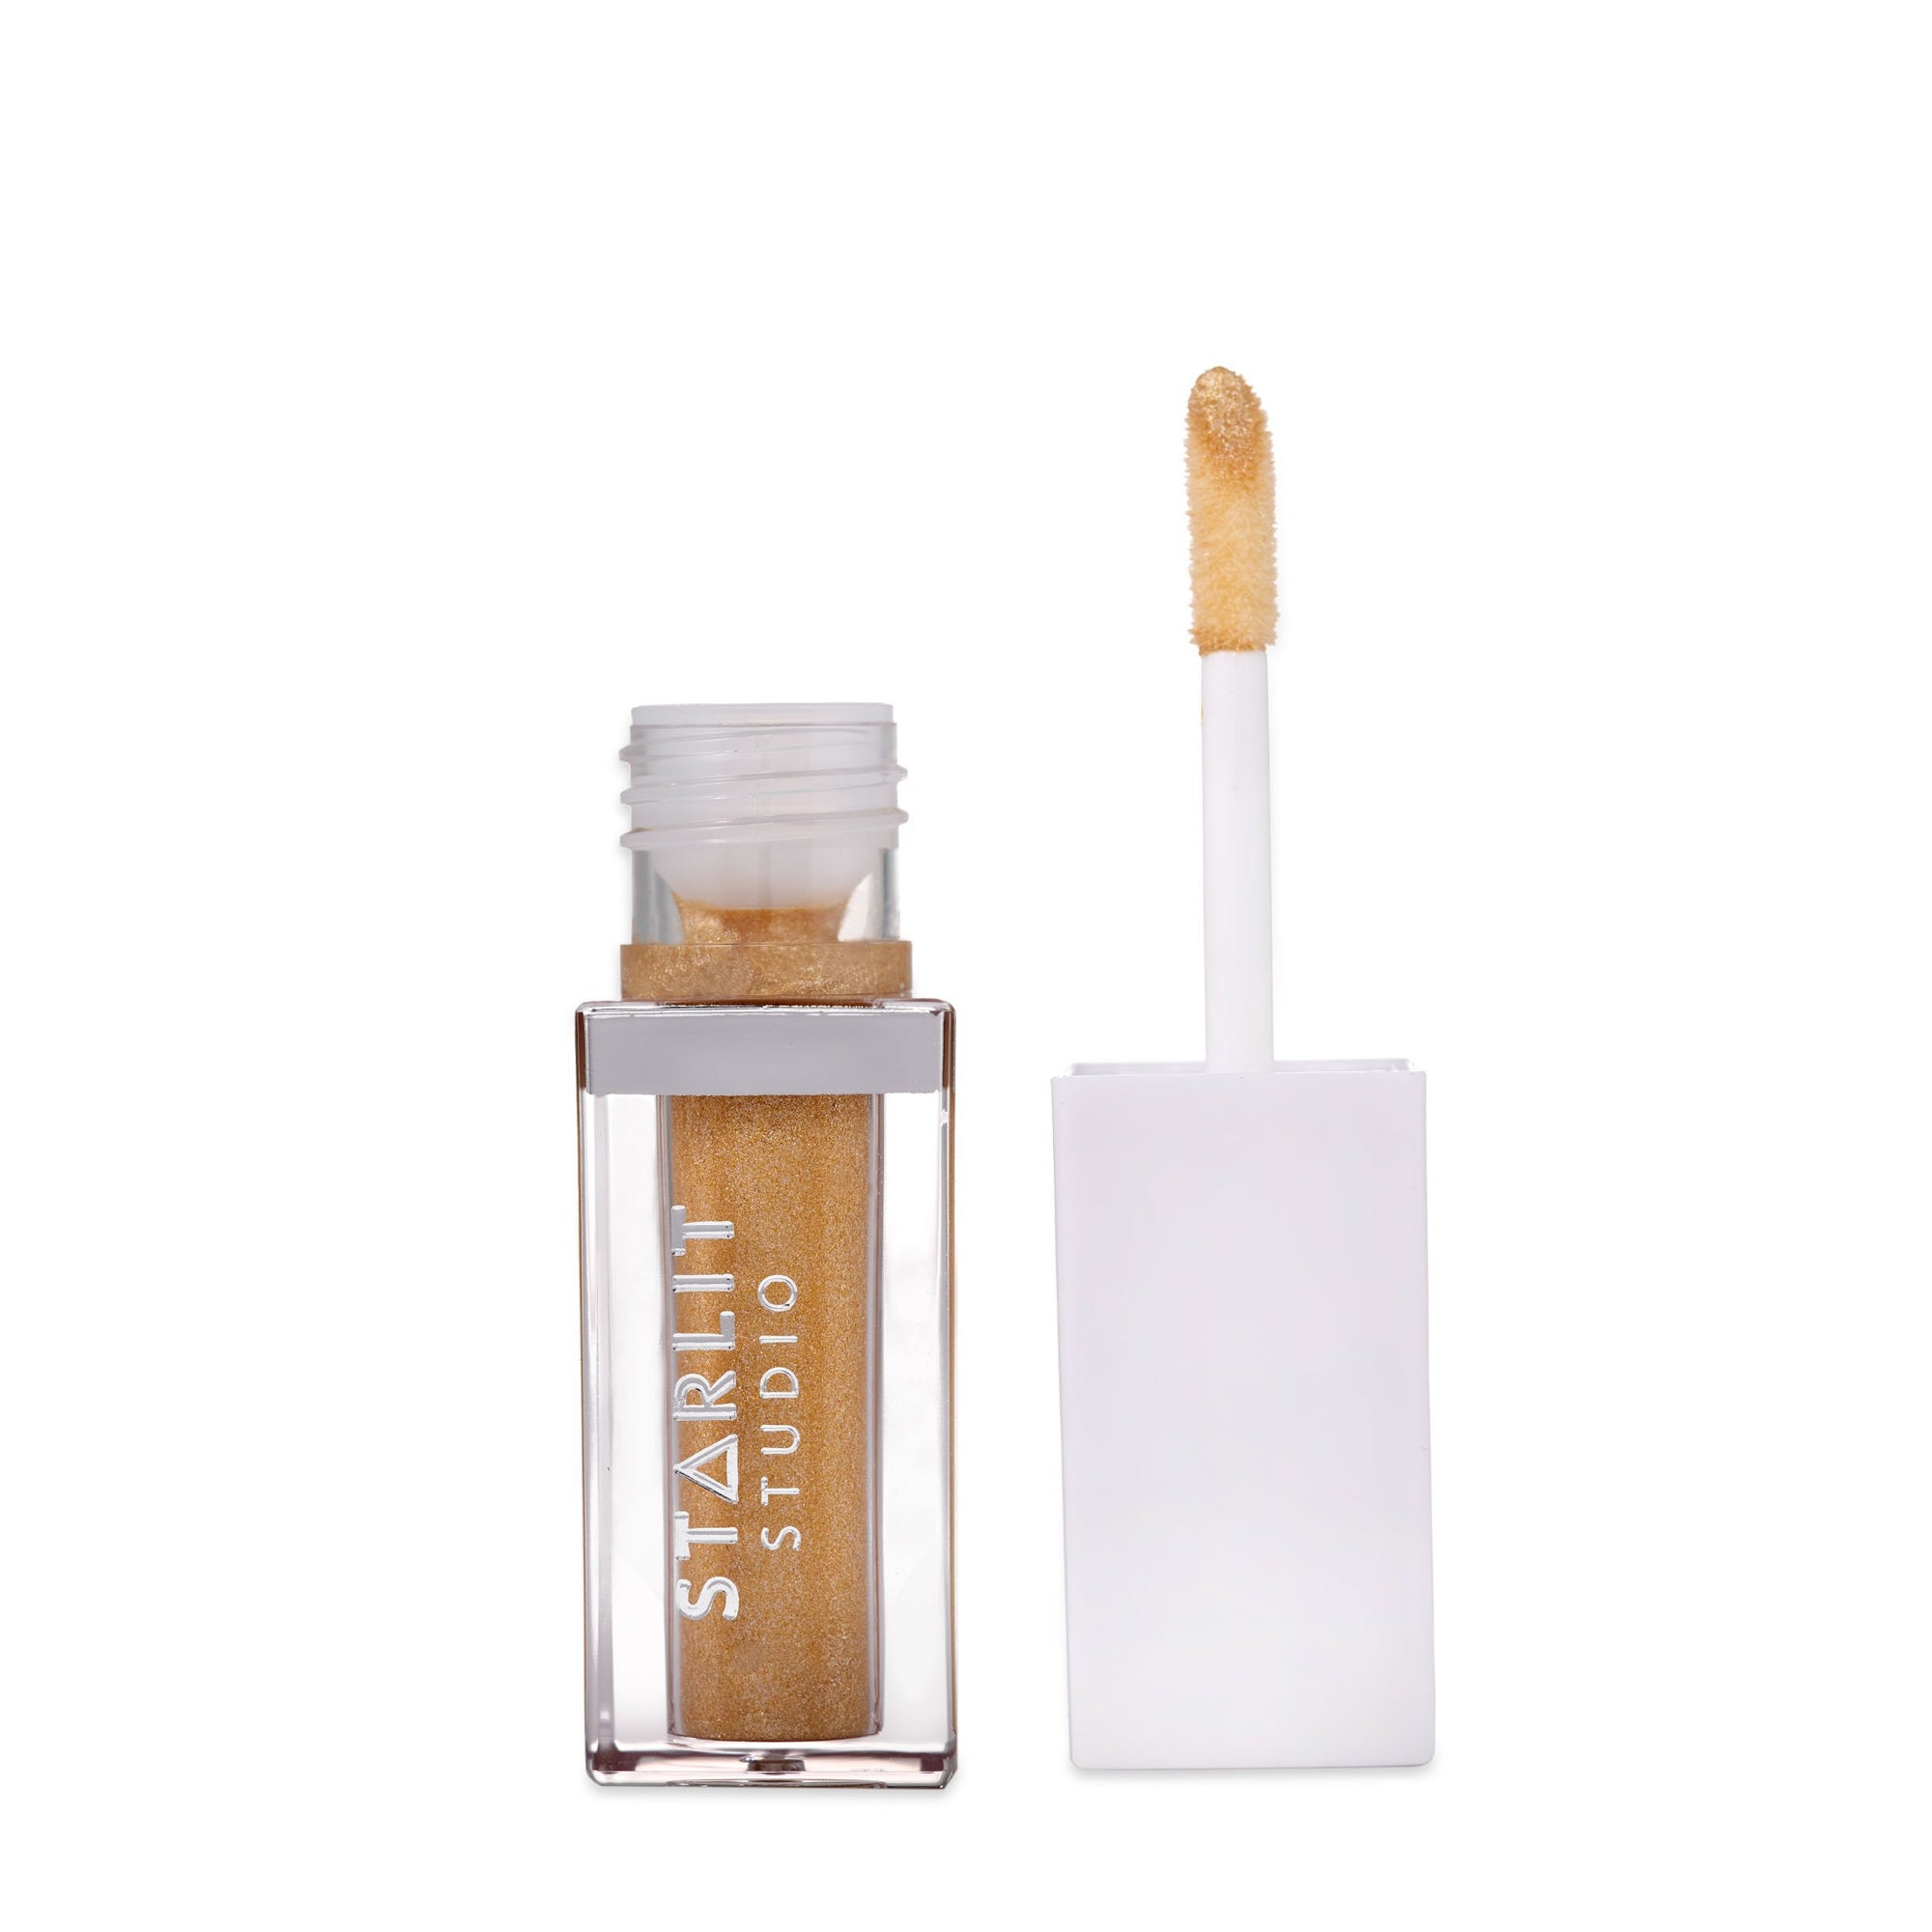 Starlit Studio - Mythical Liquid Lid Shadow in Gold Coin